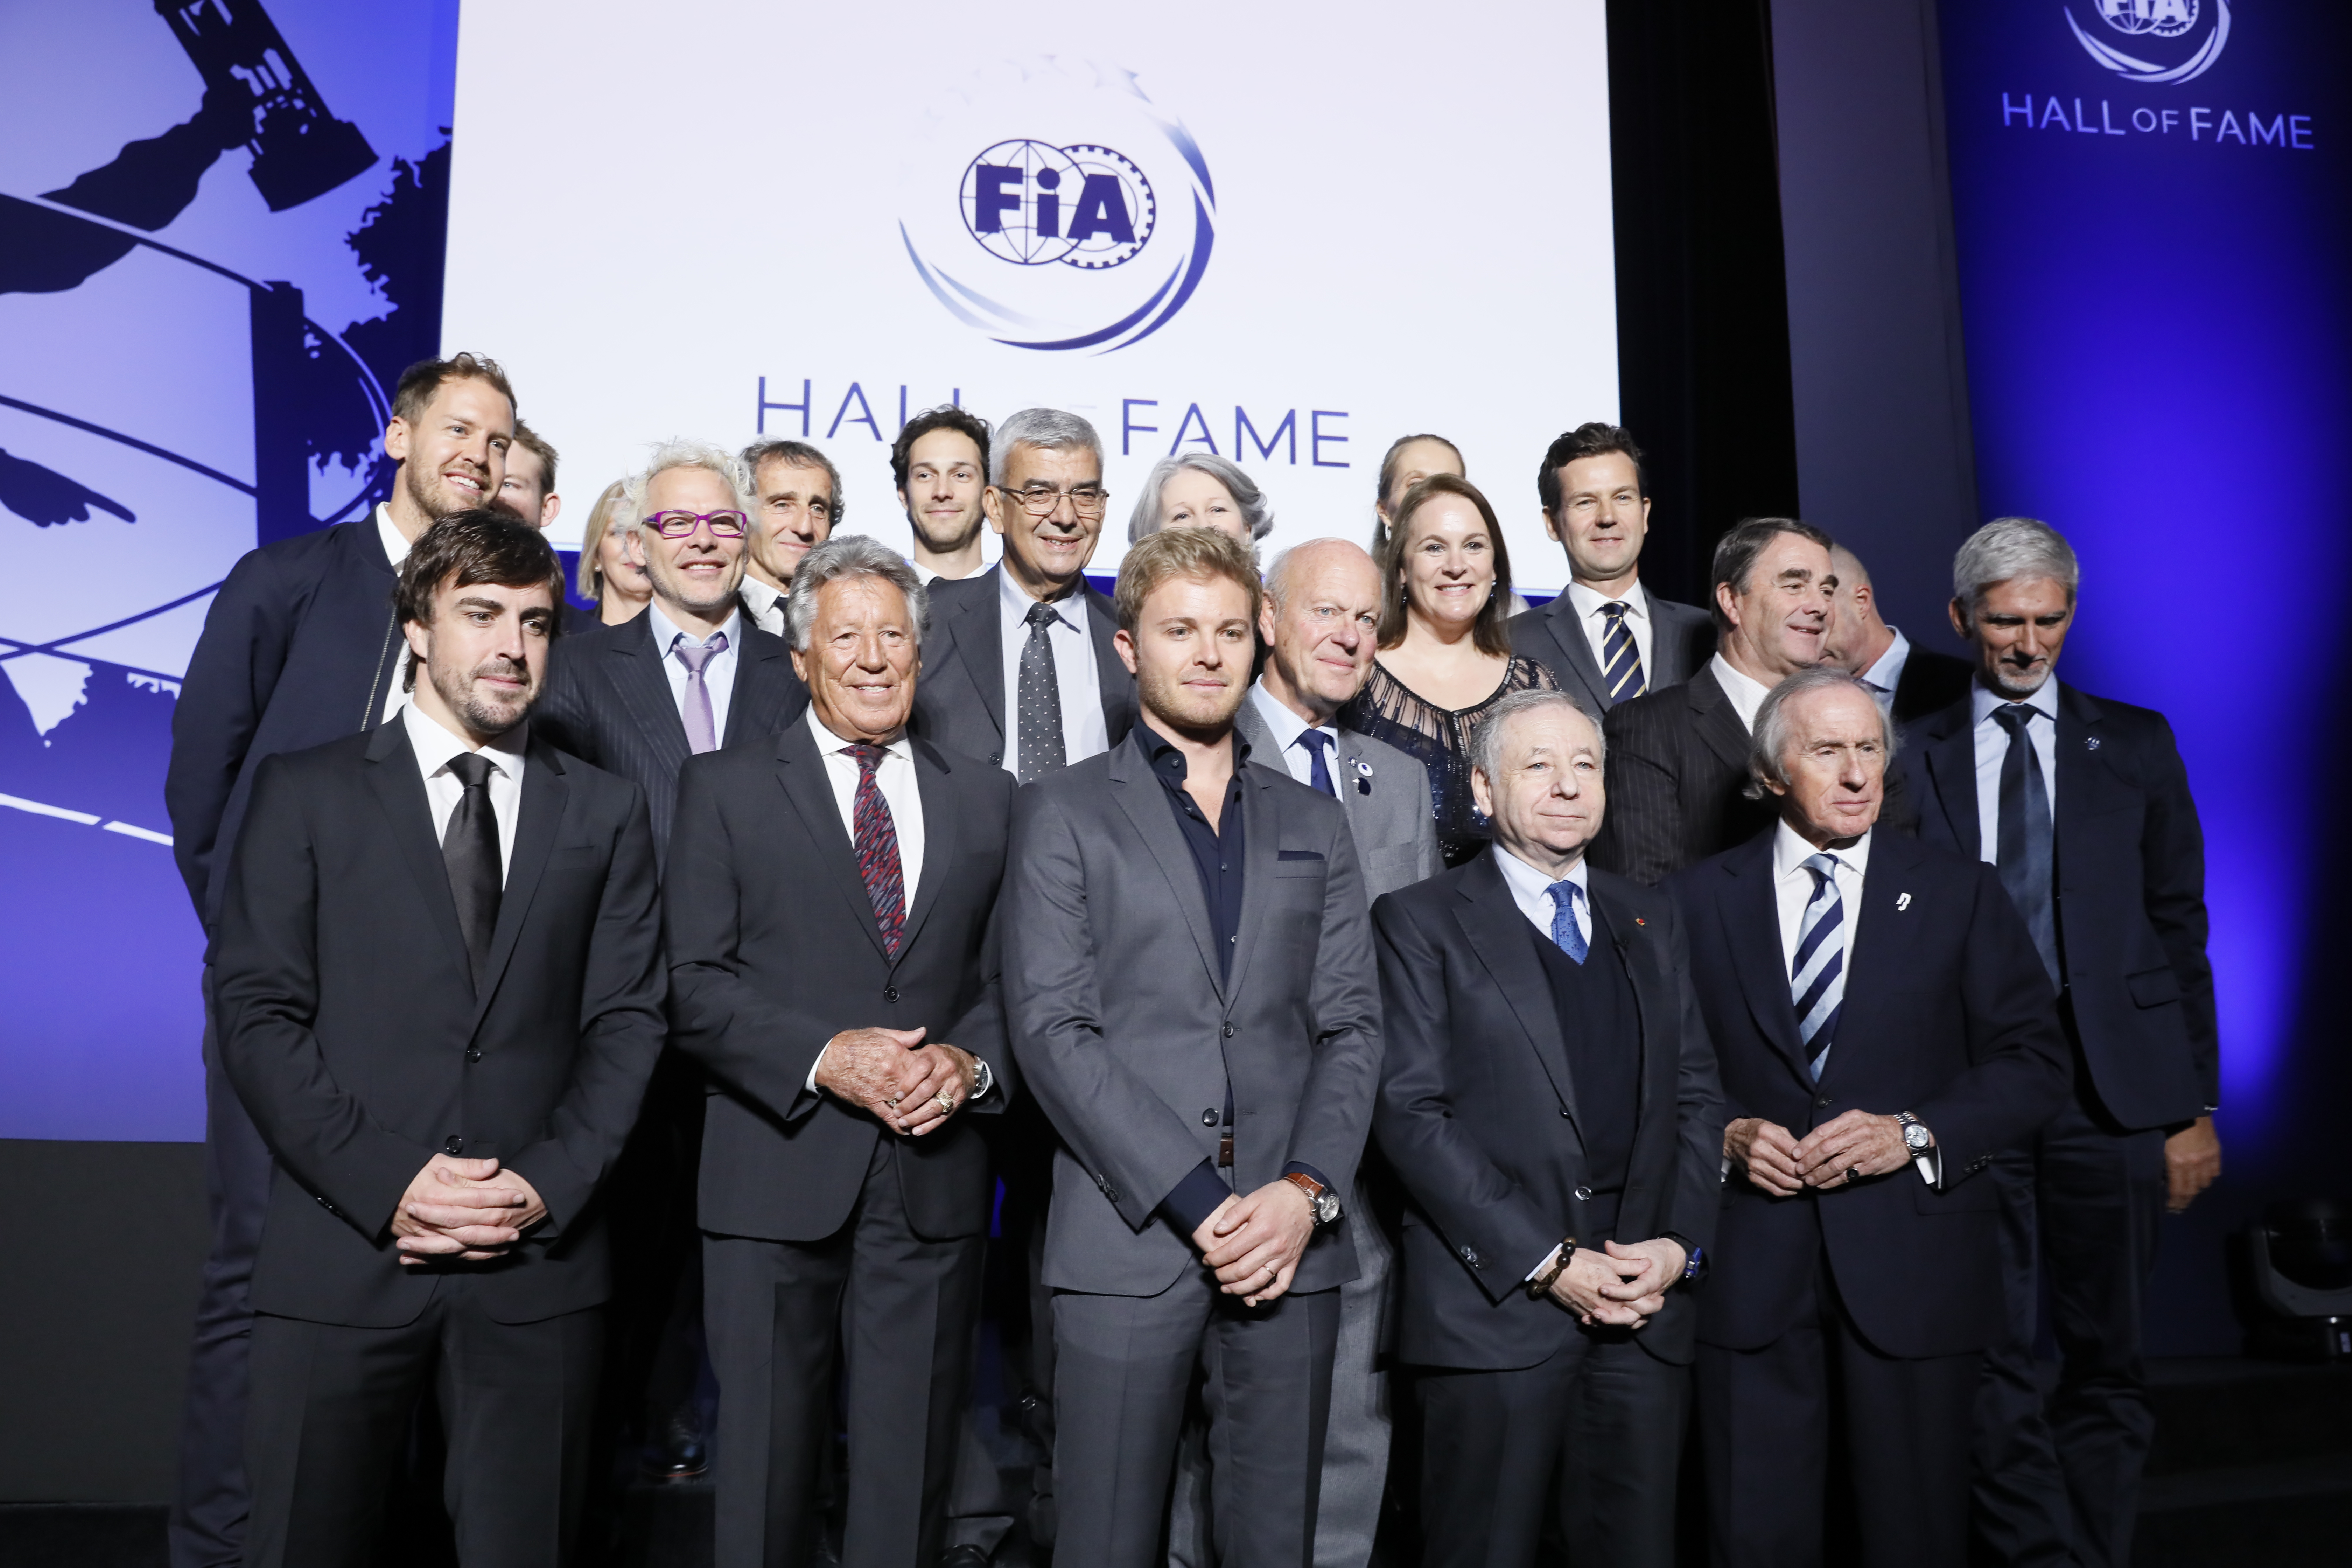 F1 Champions gather in Paris as FIA opens Hall of Fame